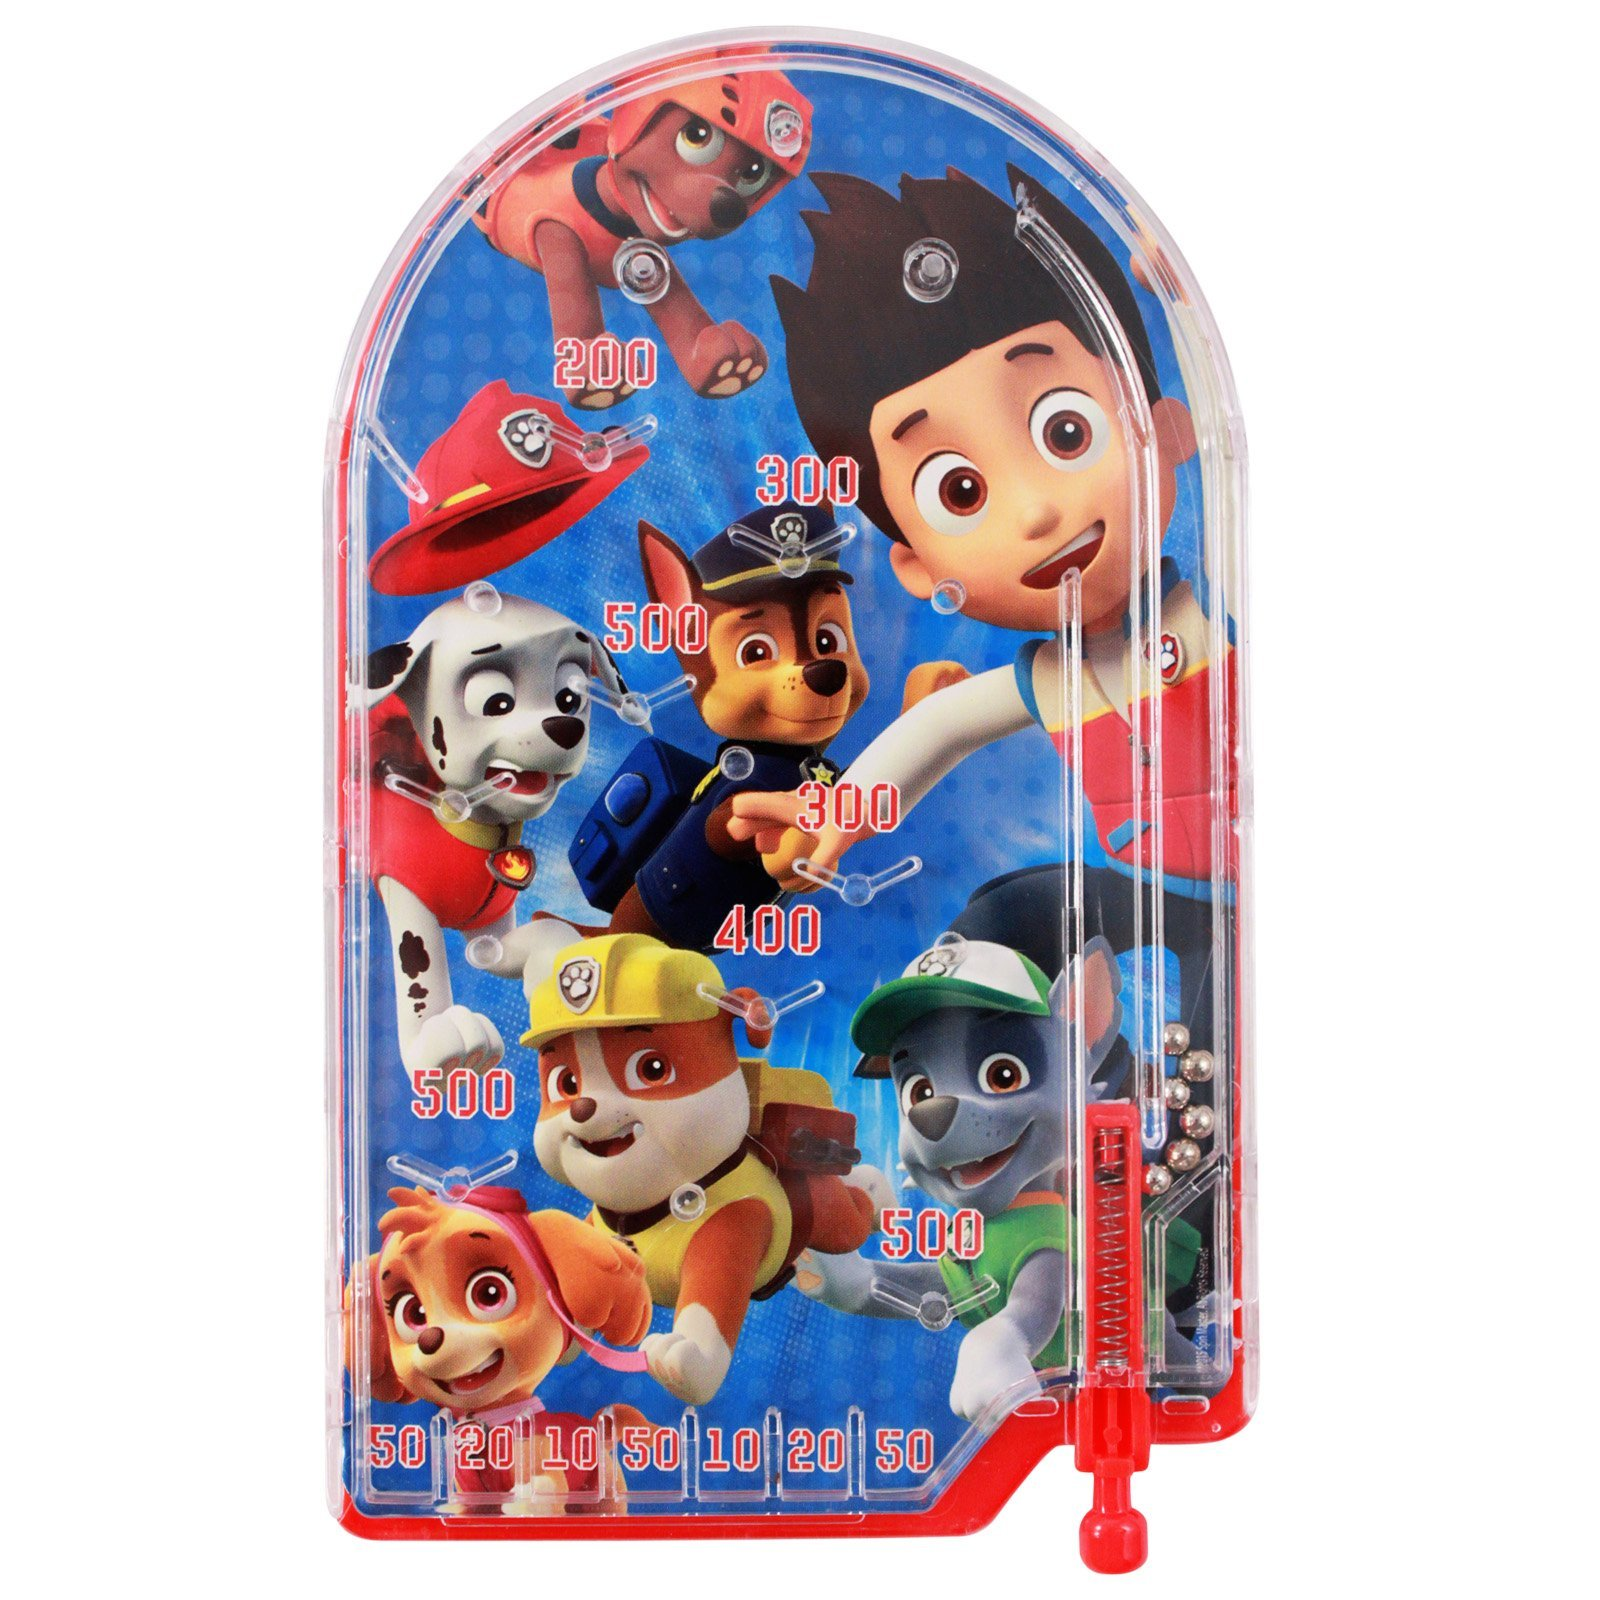 Nickelodeon Paw Patrol Miniature Handheld Pinball Game Boys or Girls Themed Birthday Party Favors, Travel Game